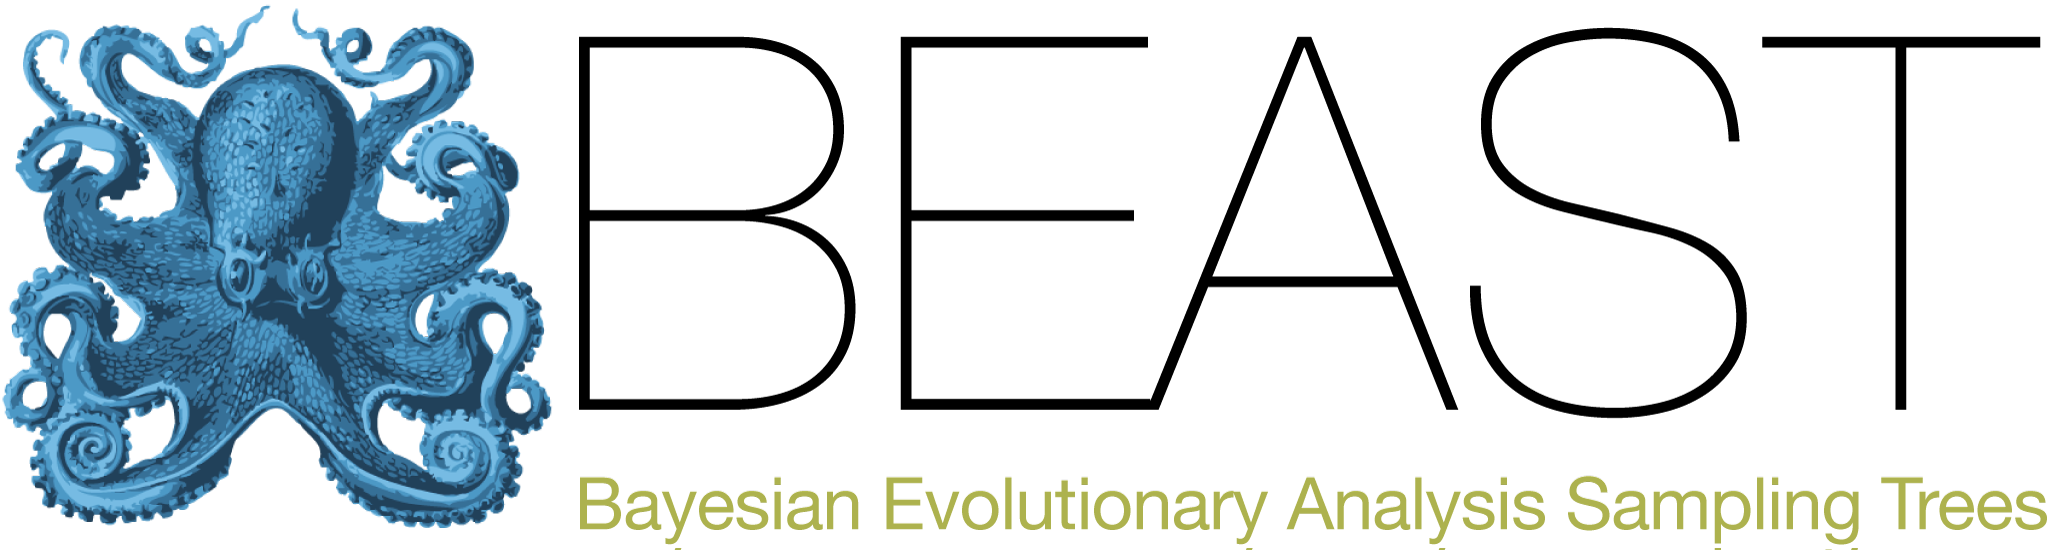 beast software_BEAST Software - Bayesian Evolutionary Analysis Sampling Trees | BEAST Documentation